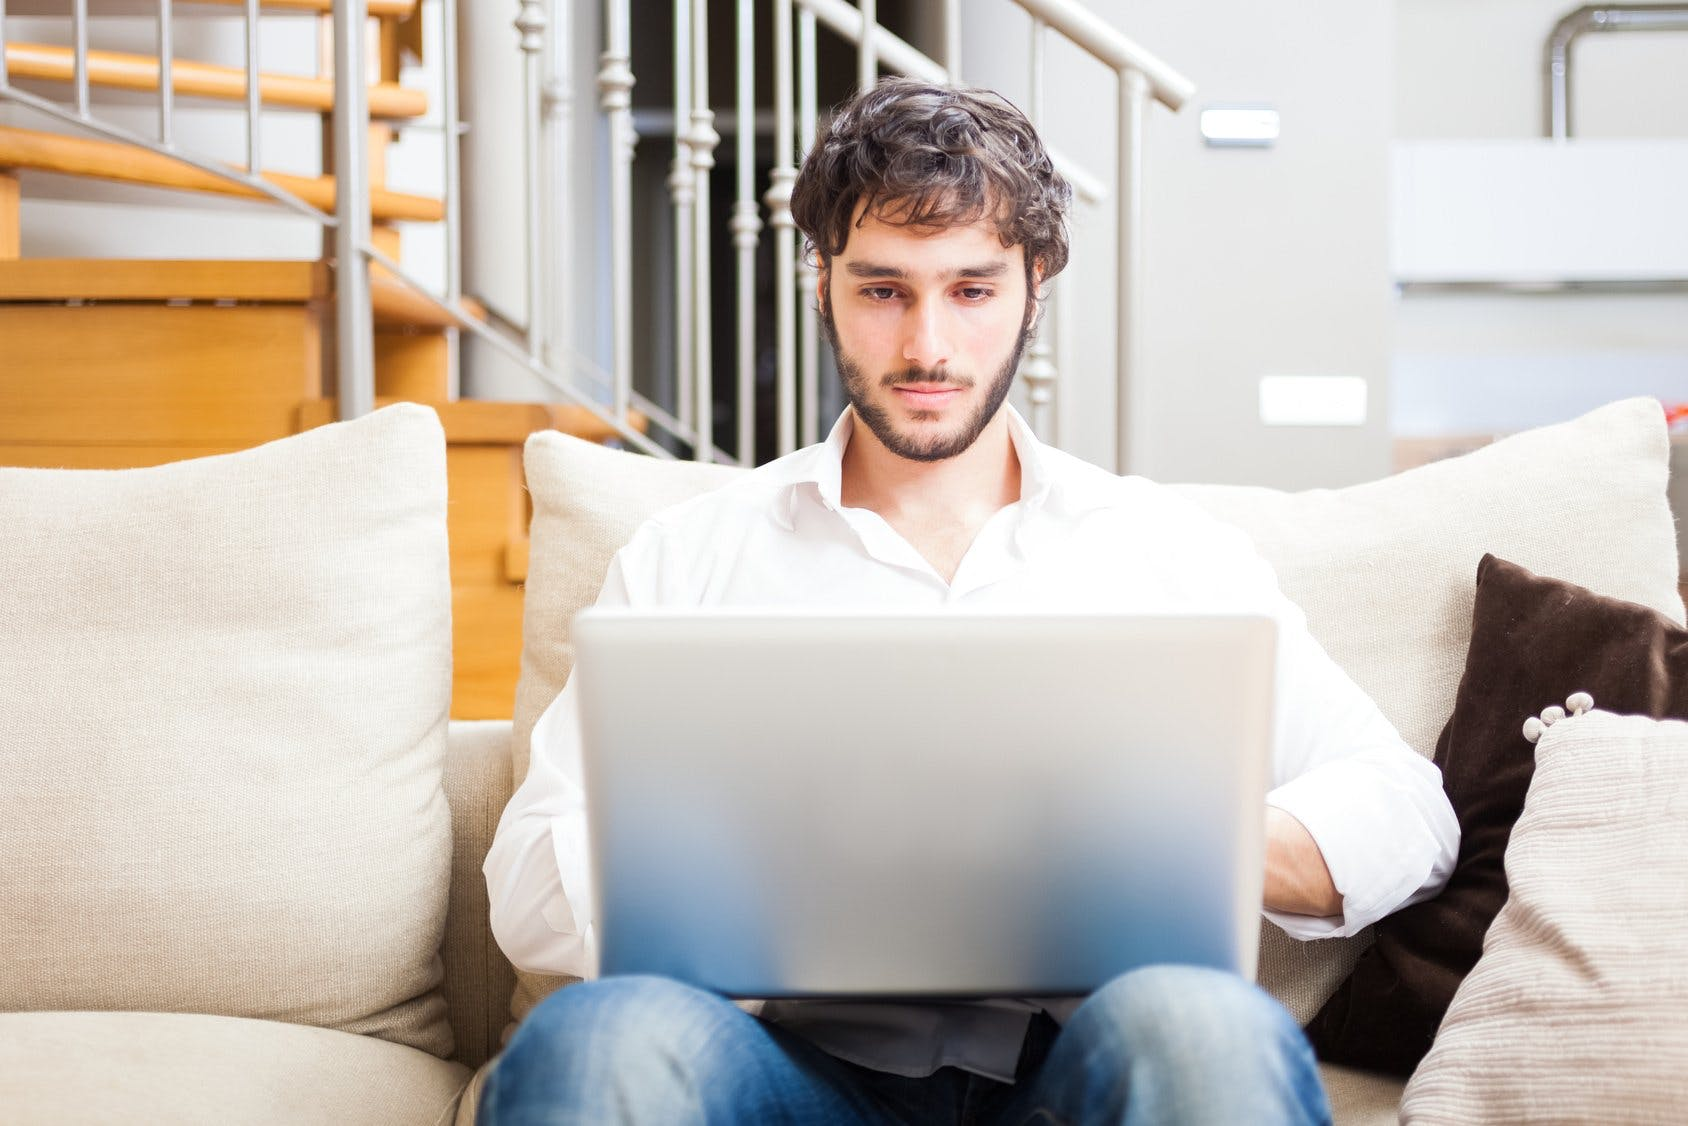 The Top 10 Mistakes Men Make When Contacting Women Online